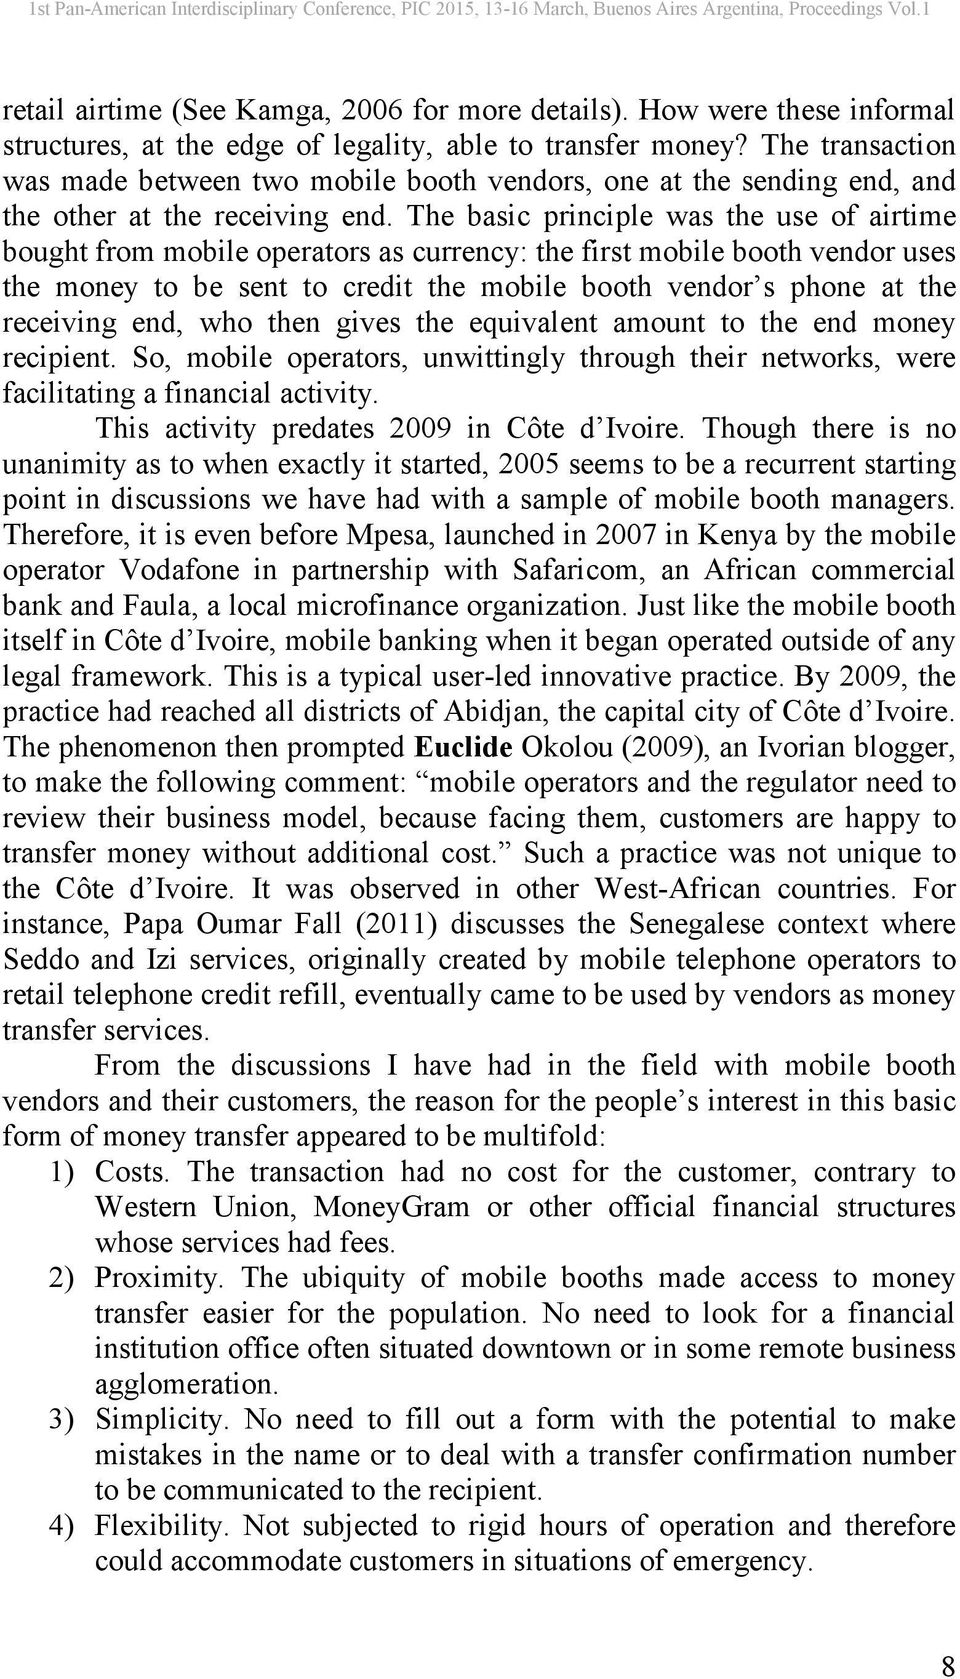 The basic principle was the use of airtime bought from mobile operators as currency: the first mobile booth vendor uses the money to be sent to credit the mobile booth vendor s phone at the receiving